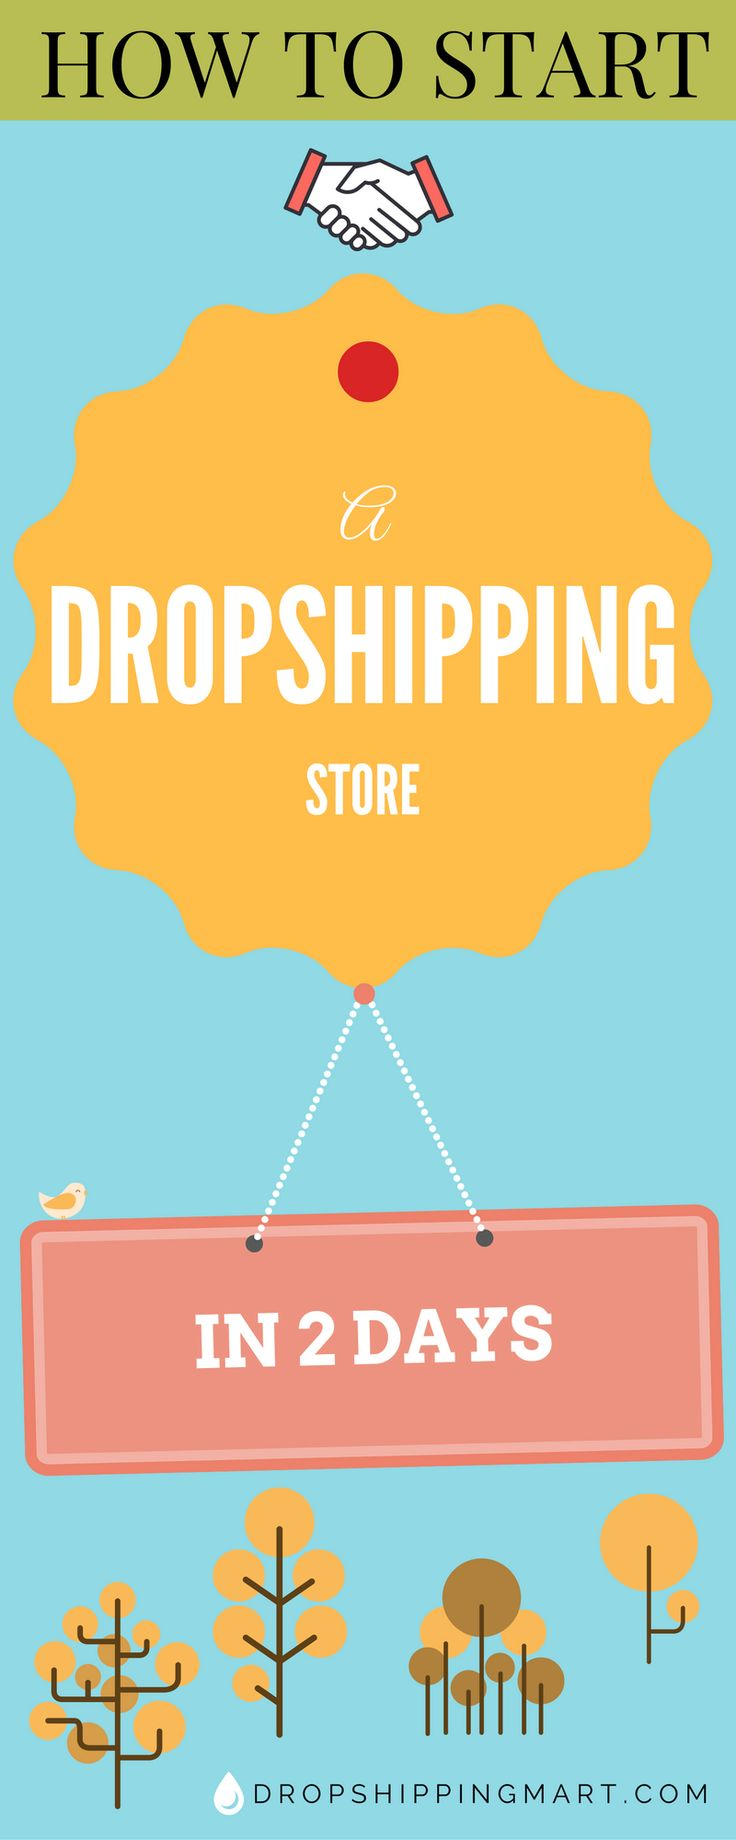 Plus, if you decide you need help writing a blog post, for example, you can take advantage of the online freelance community to get the work done at an affordable cost. #dropshipping